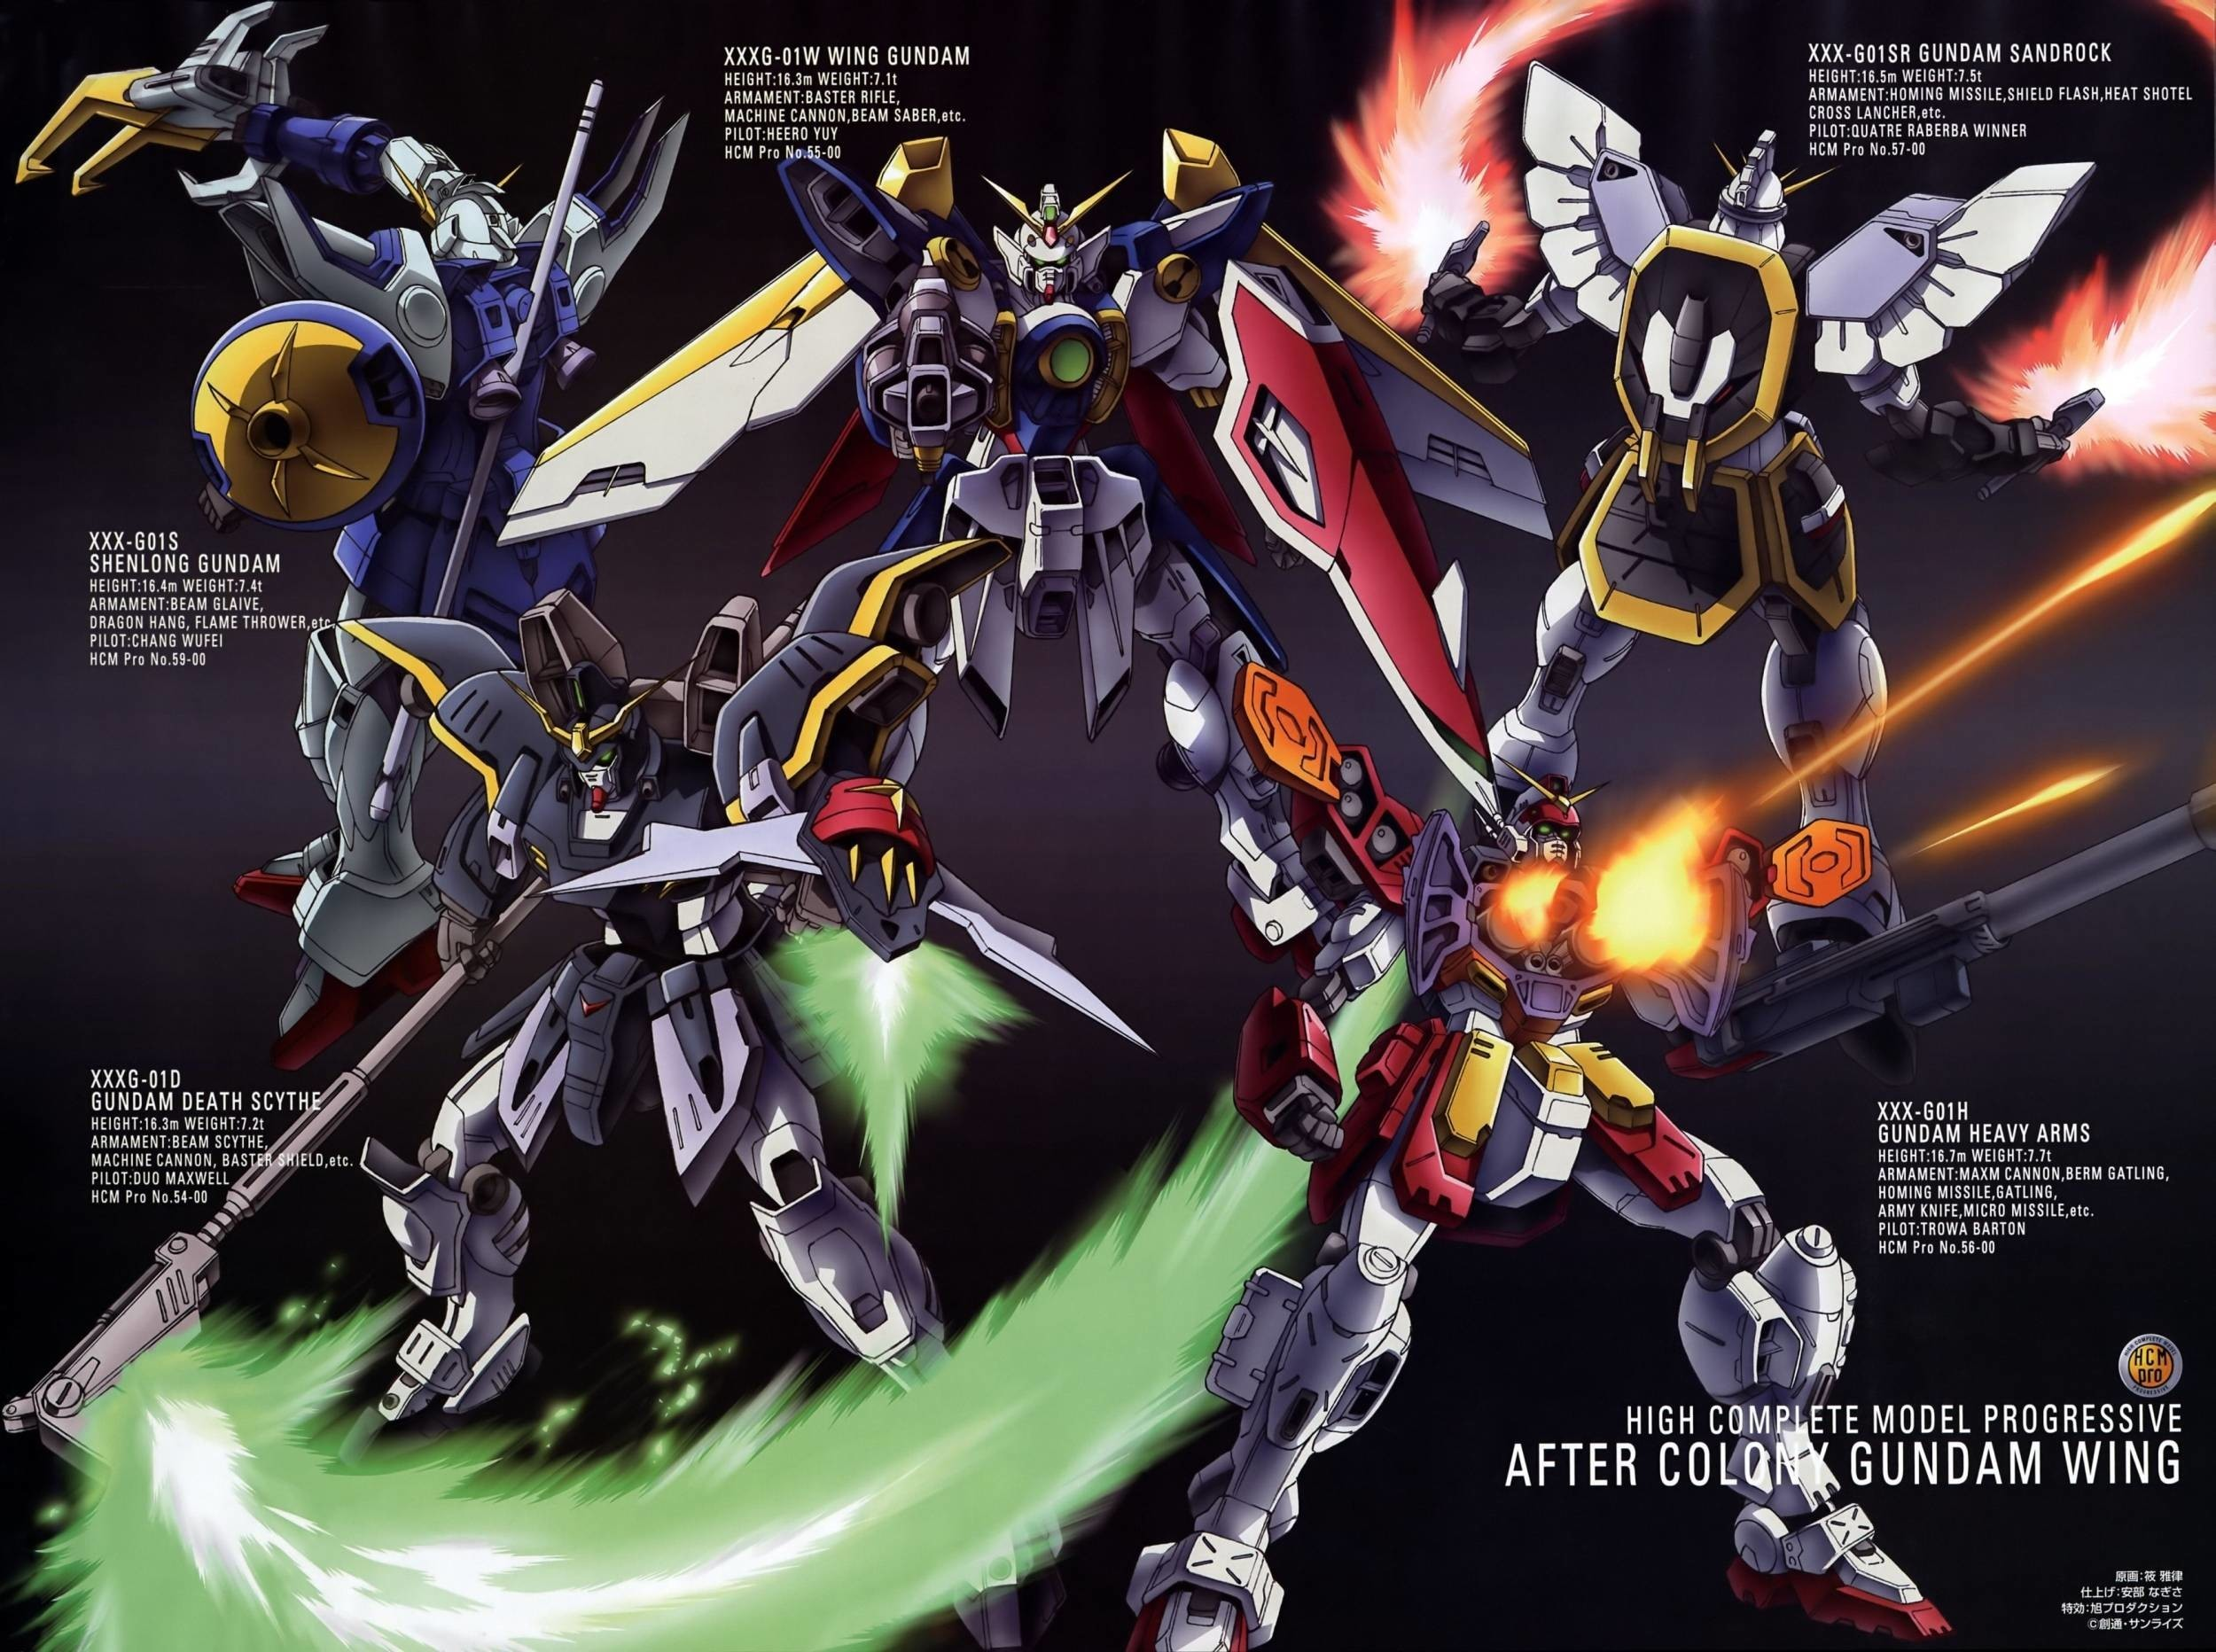 2500x1864 1920x1200 Anime Mobile Suit Gundam Seed Destiny wallpapers (Desktop, Phone .